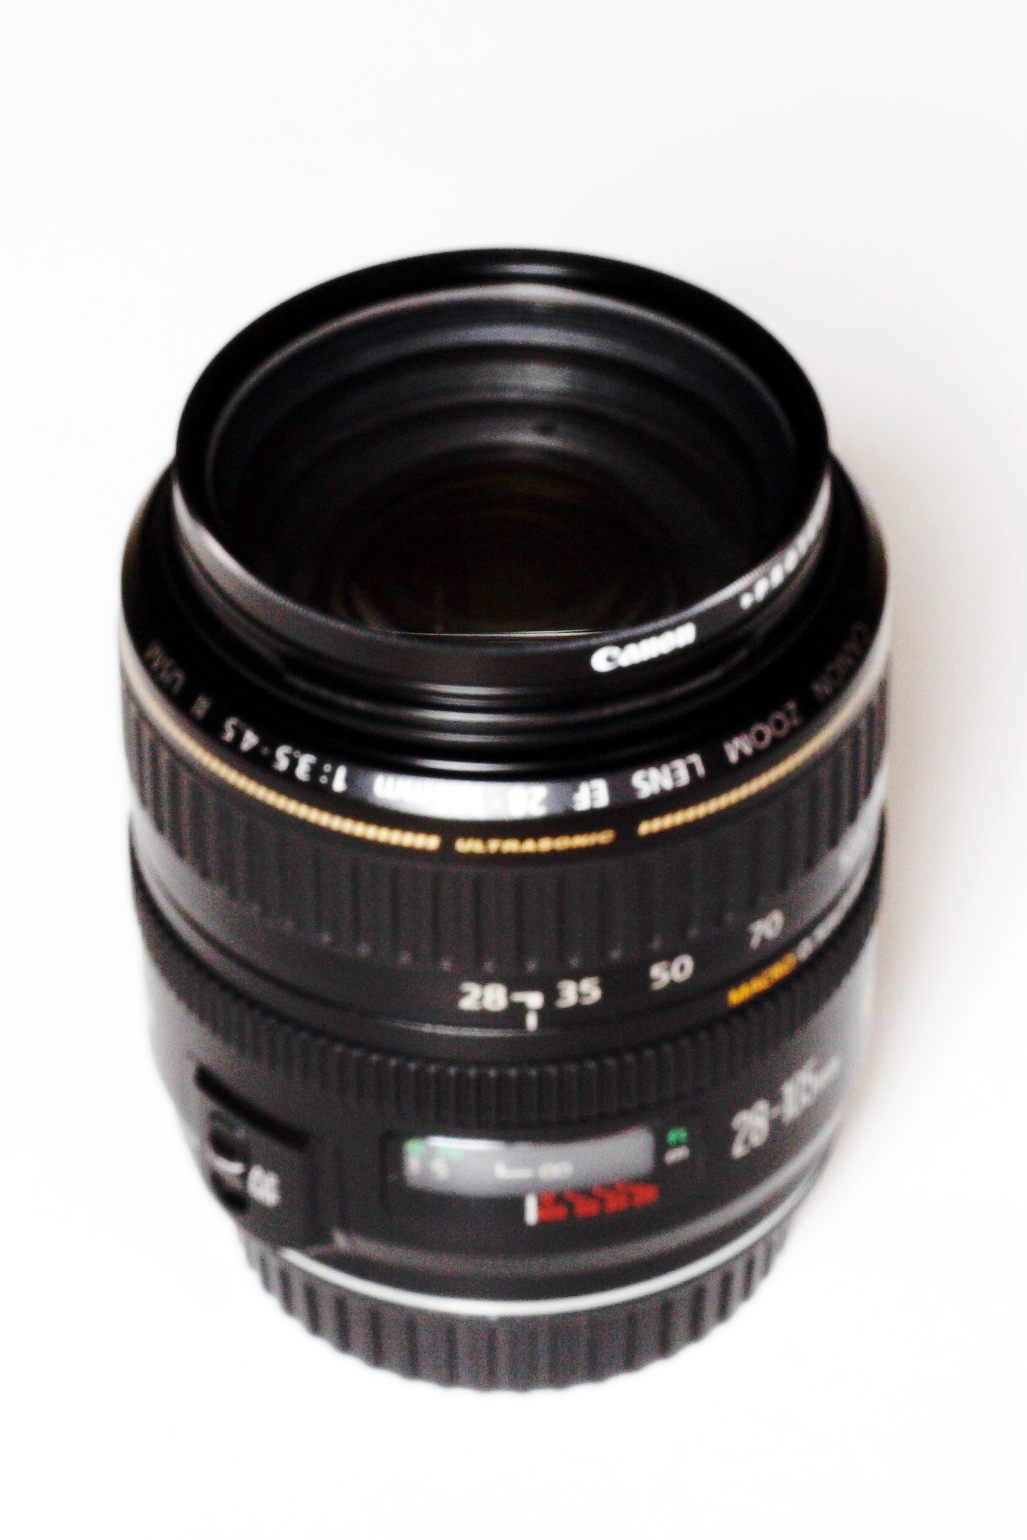 New Canon EF 100mm f/2 USM Telephoto Lens-in Camera Lens